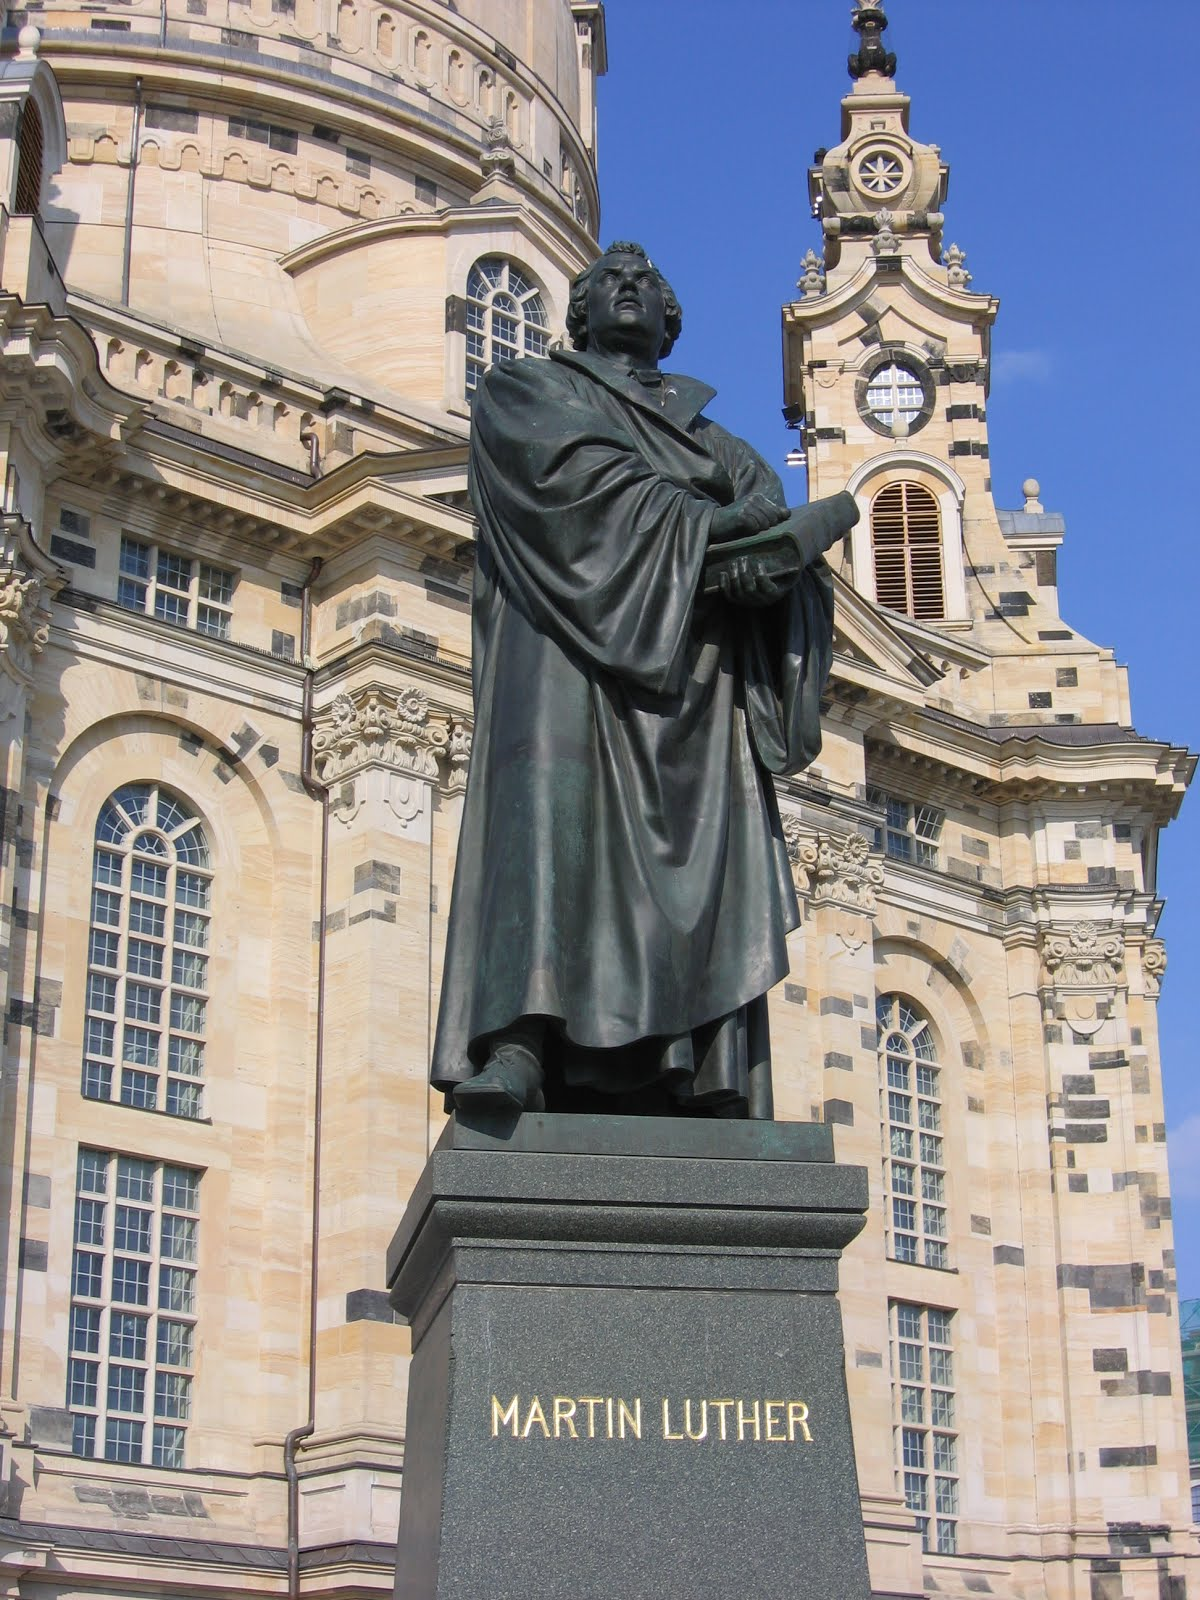 A Tour in the Footsteps of Martin Luther